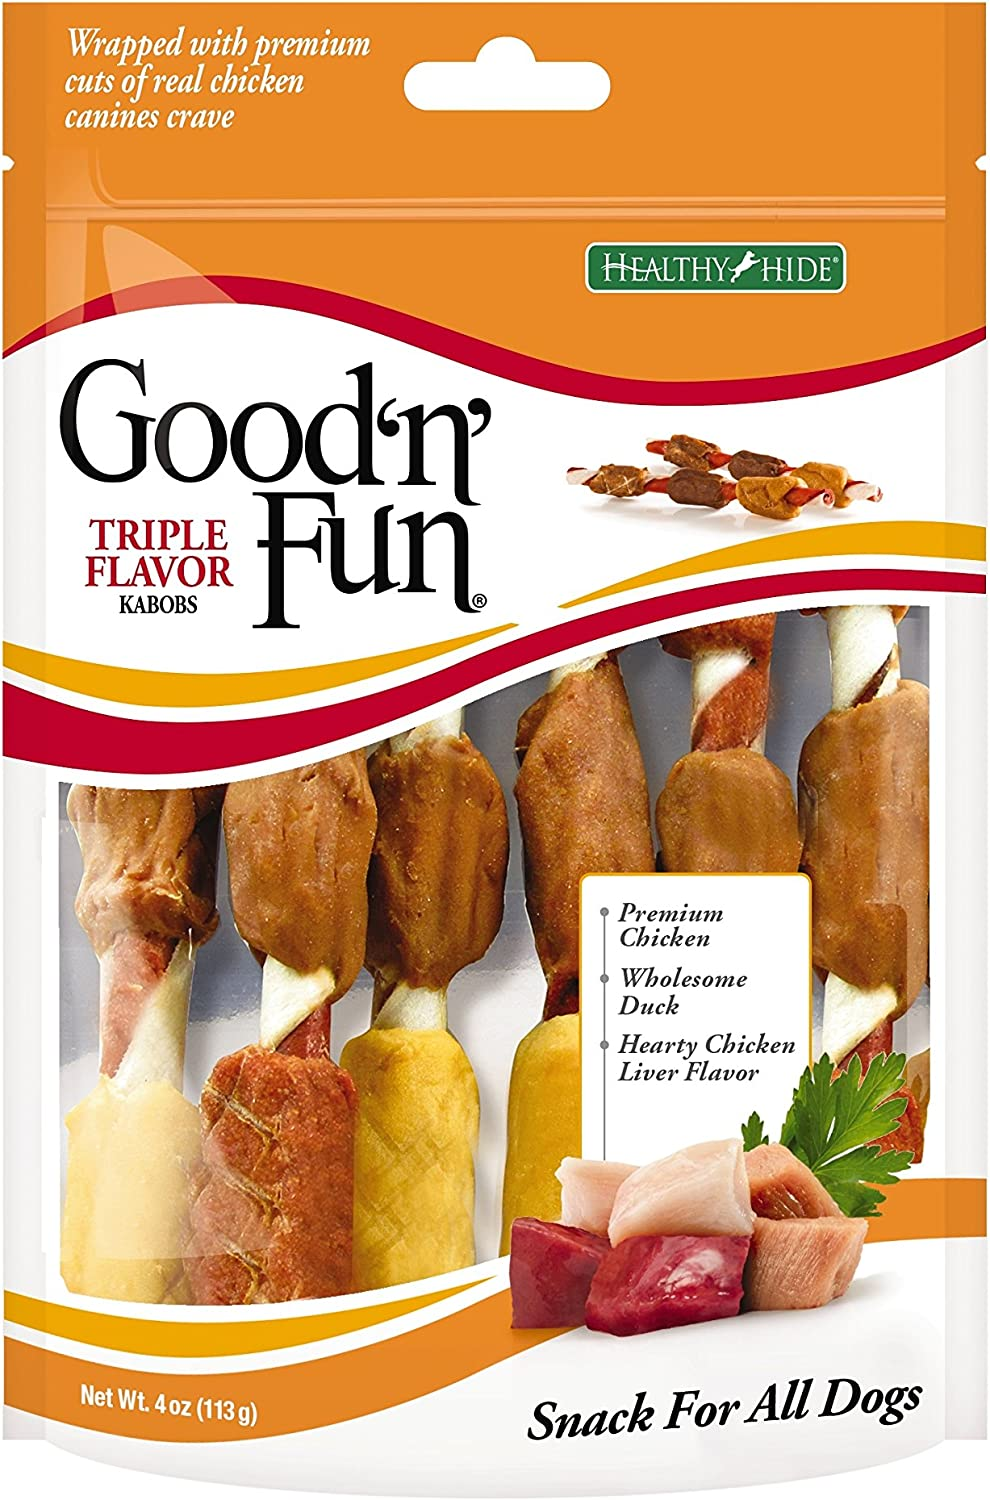 Good'N'Fun Triple Flavored Rawhide Kabobs for Dogs